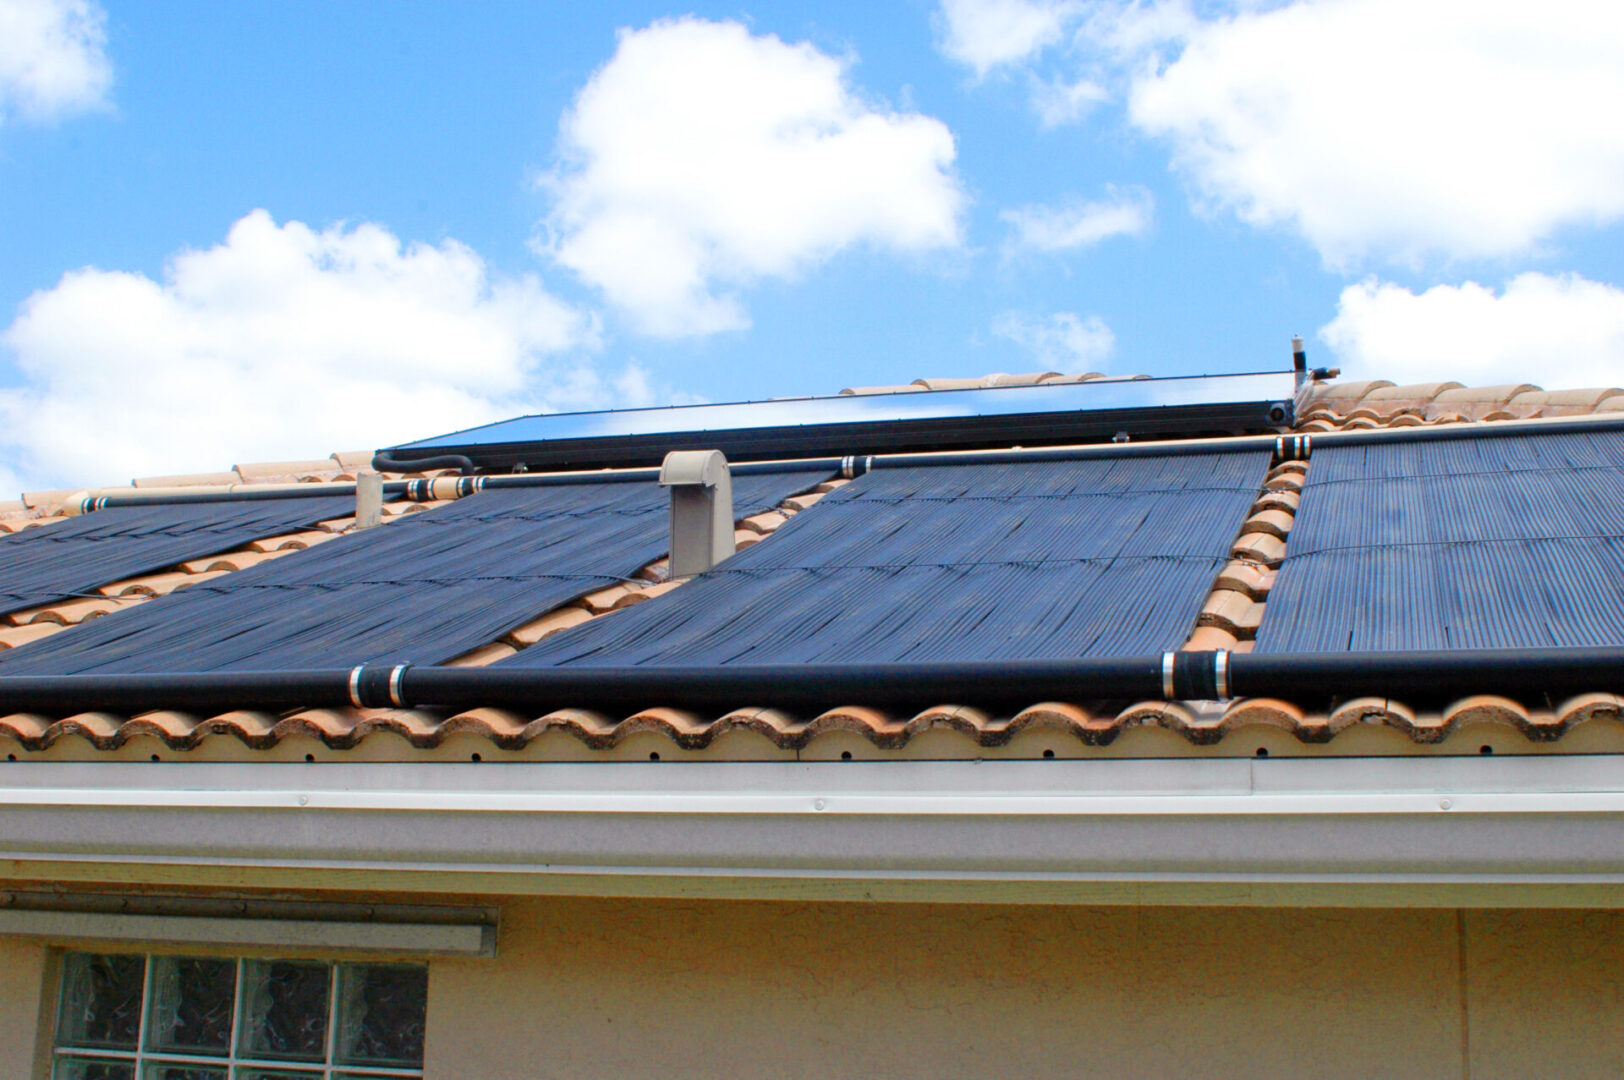 Solar Domestic Hot Water System with Solar Pool Heating - Green Acres, FL